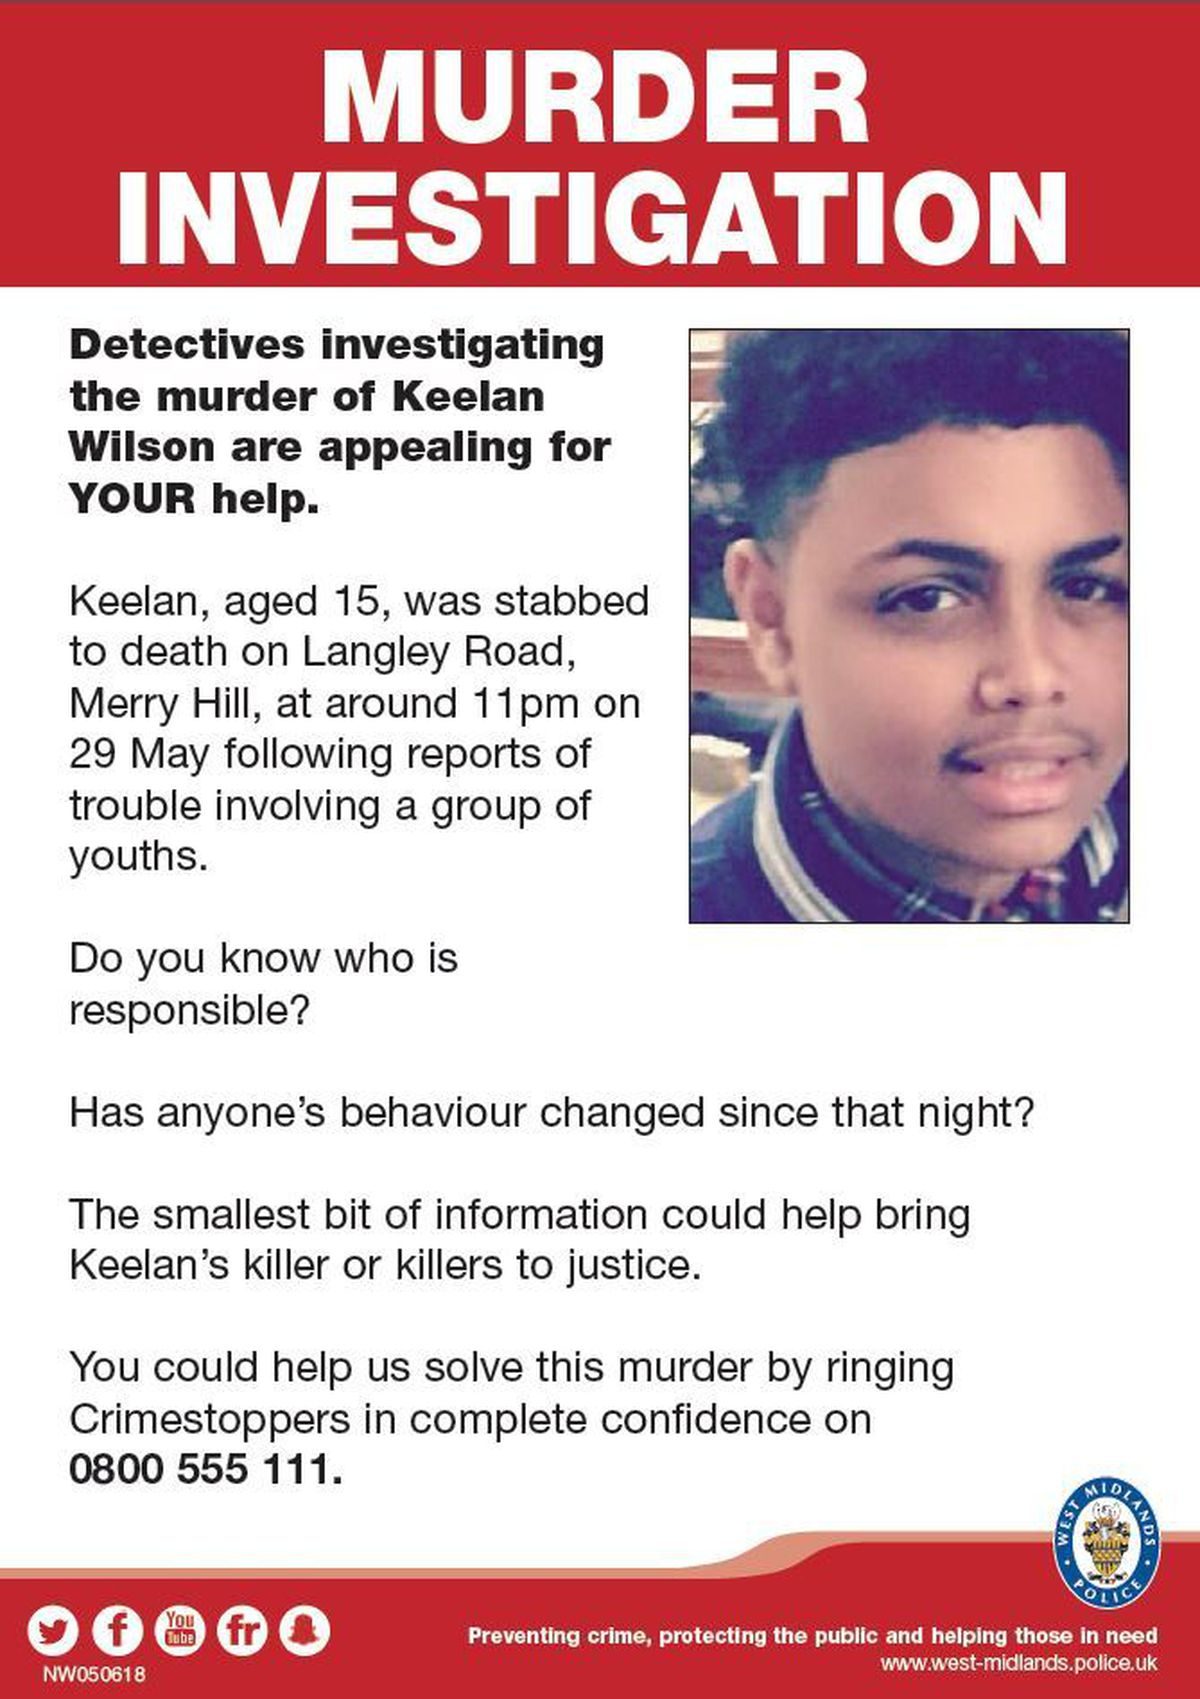 A police poster